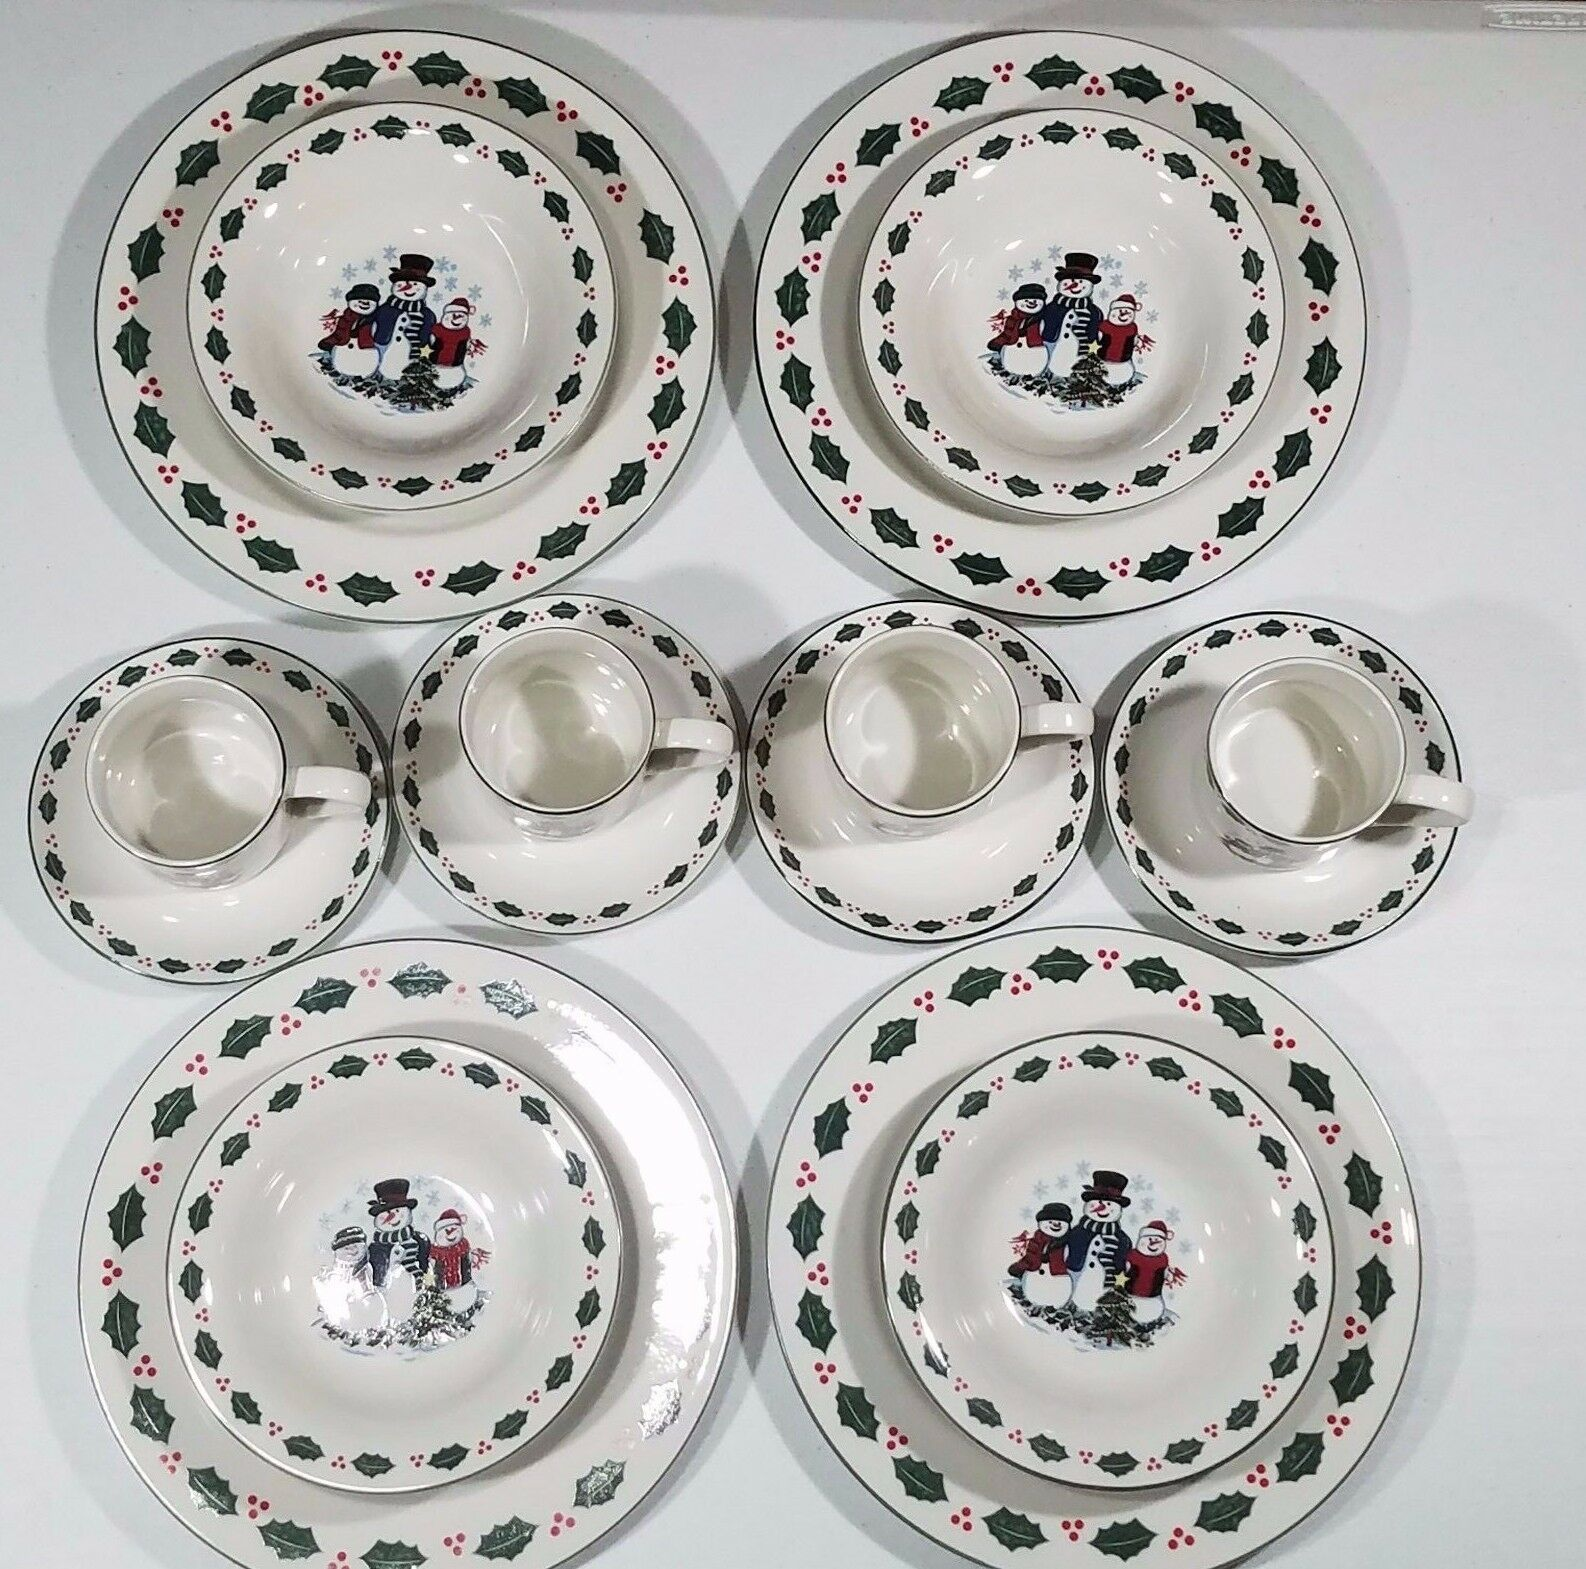 Picture 1 of 8 ...  sc 1 st  eBay & Snowman 16 Piece Holiday Christmas Dinnerware Service for 4 Set | eBay